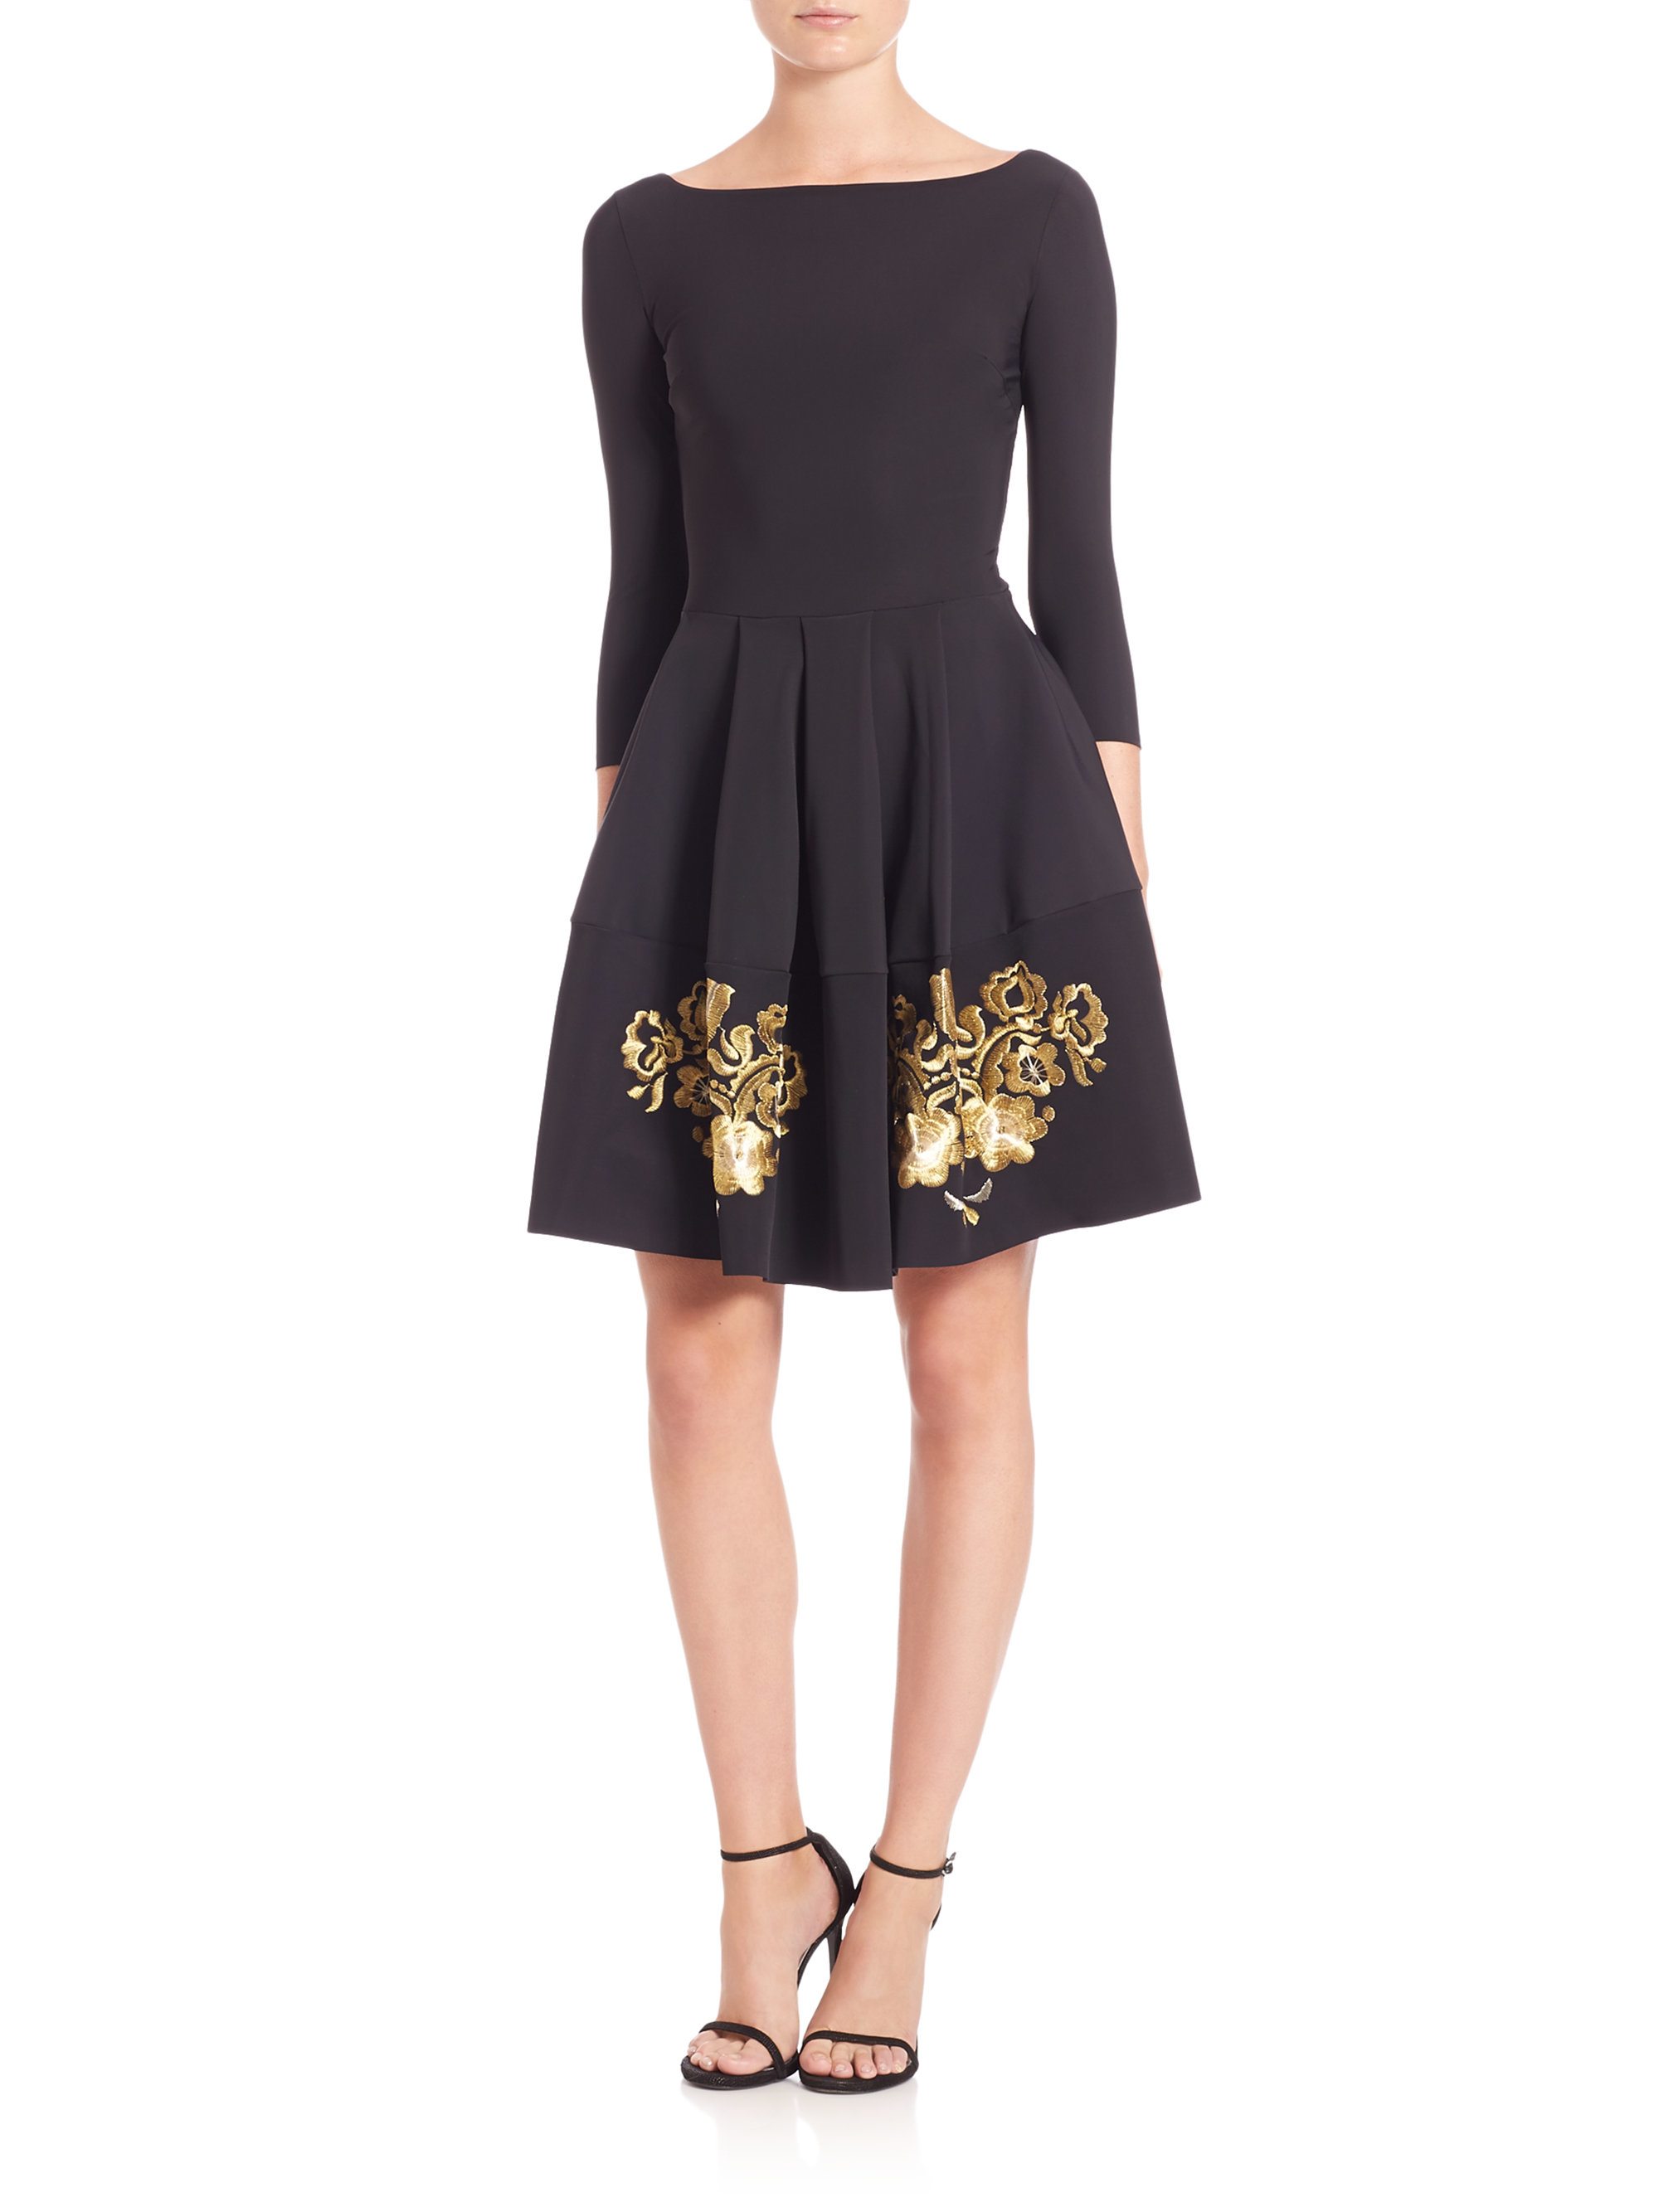 DRESSES - Short dresses La Petite Robe Di Chiara Boni Cheap Eastbay Quality Outlet Store Free Shipping From China Cheapest Sale Online New Fashion Style Of 1ym0JTt3h